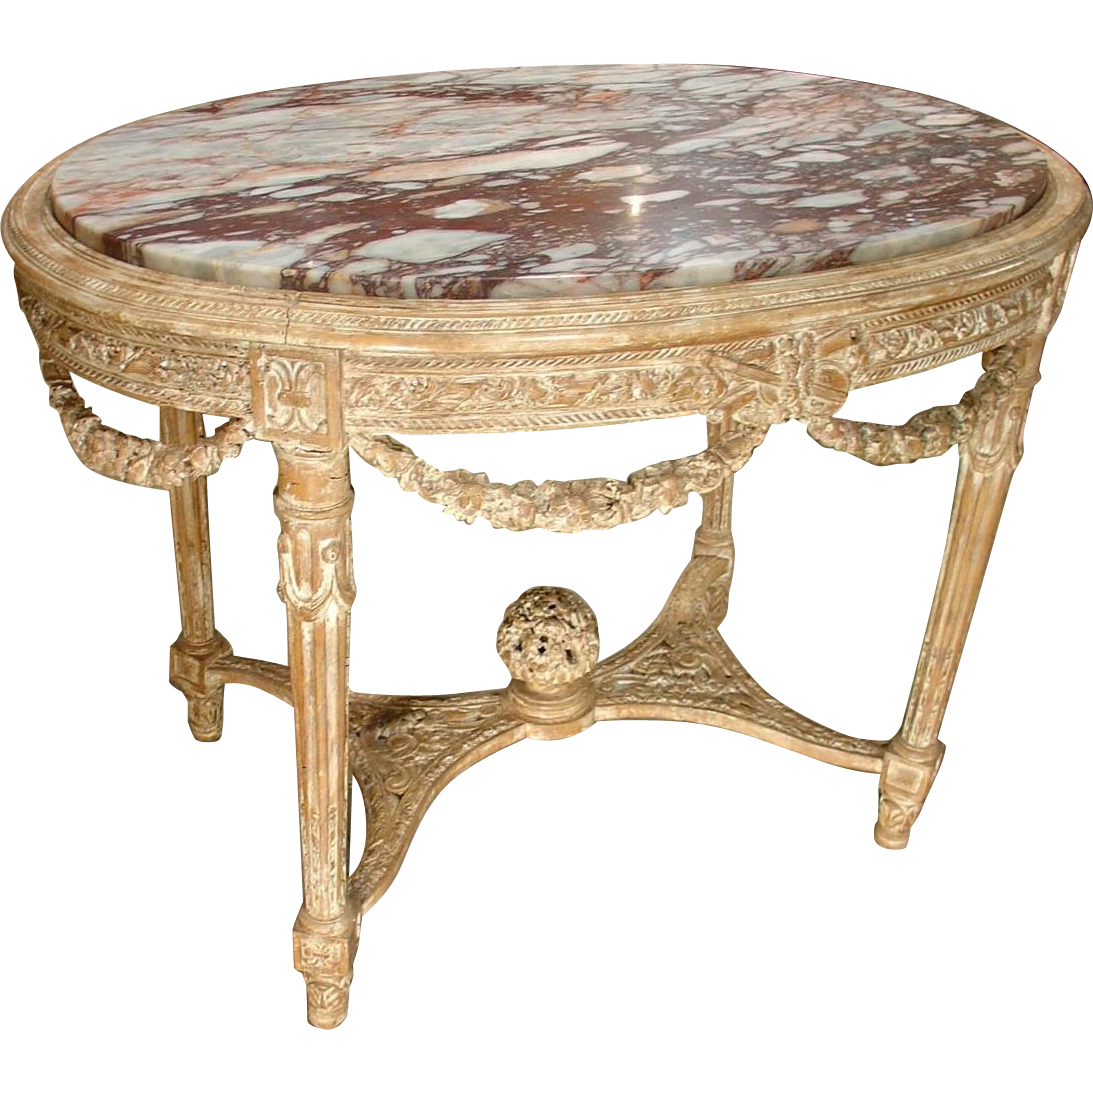 Antique Parcel Paint Louis XVI Center Table with Musical Motifs